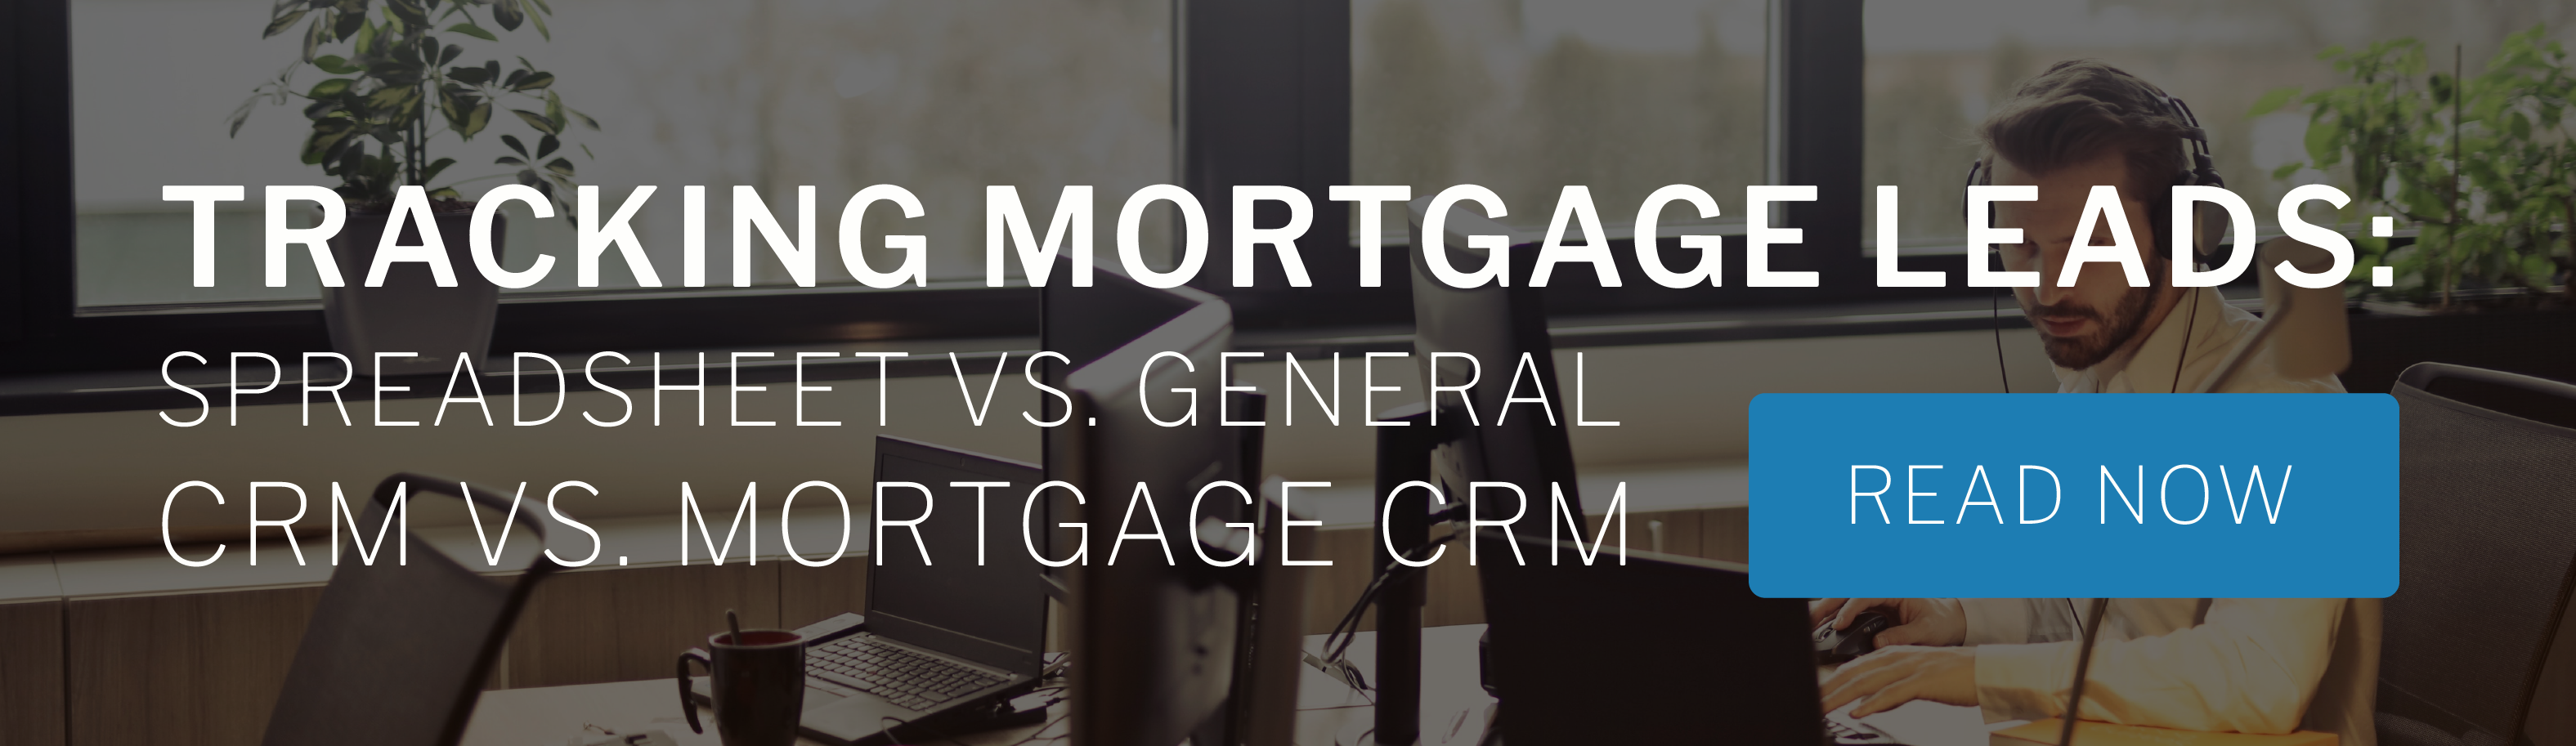 How to track mortgage leads: spreadsheets, CRMs and mortgage CRMs